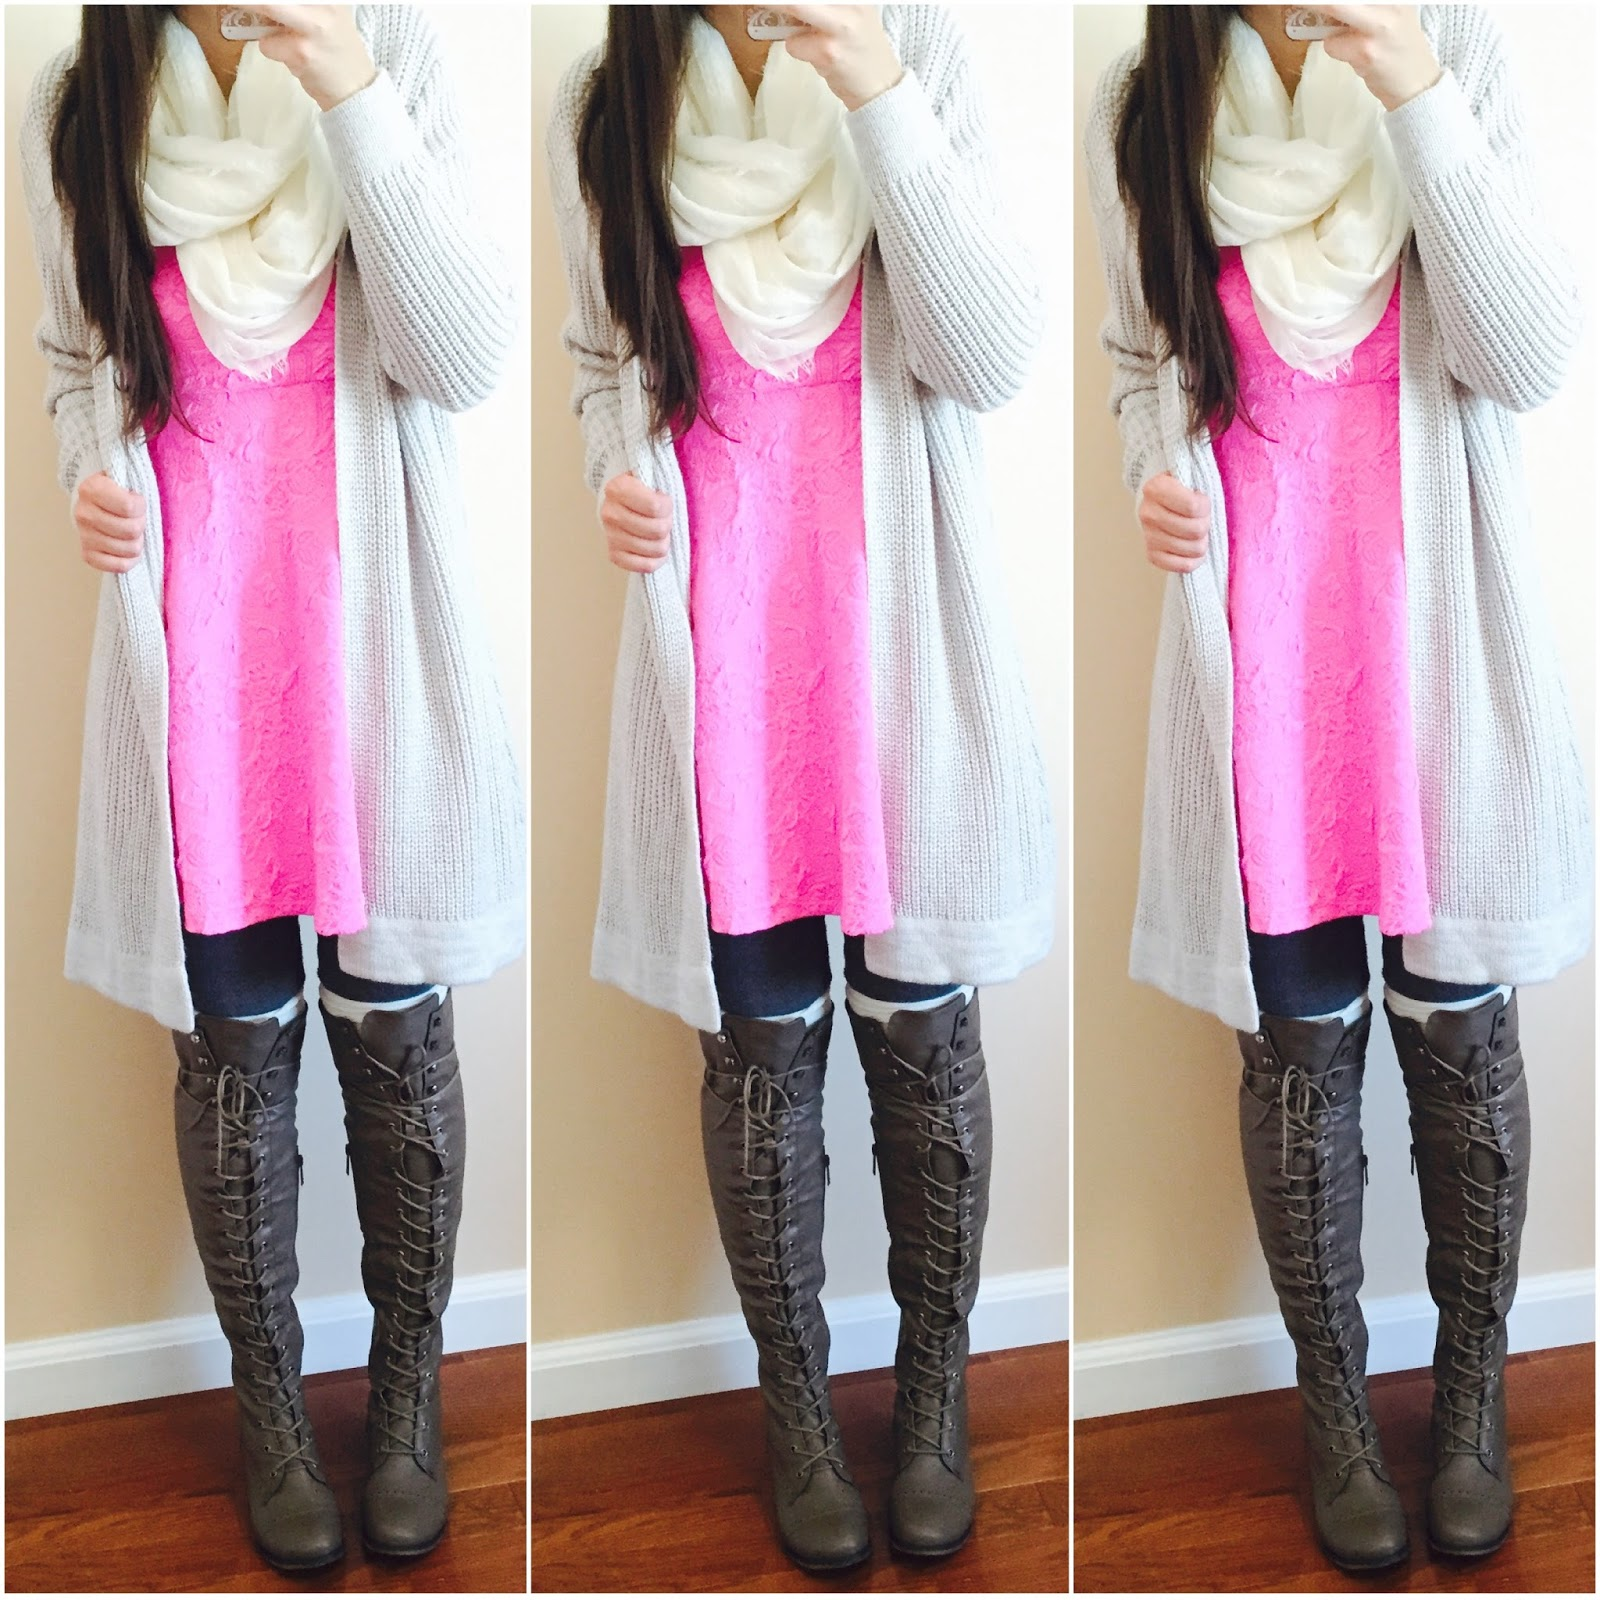 20 ways to style a pink dress, pink blush, pink dress with a sweater over it, knit sweater, brown over the knee boots, amiclubwear, fall outfit, how to style a dress for fall with boots,  two toned over the knee boots, pink knit sweater over a pink dress, how to style a knit sweater, fall to winter outfit, winter outfit, ankle booties, pinkblush draped cardigan, striped cardigan, ankle booties, grey cardigan, beige over the knee boots, white scarf, how to make a summer dress into a fall outfit,